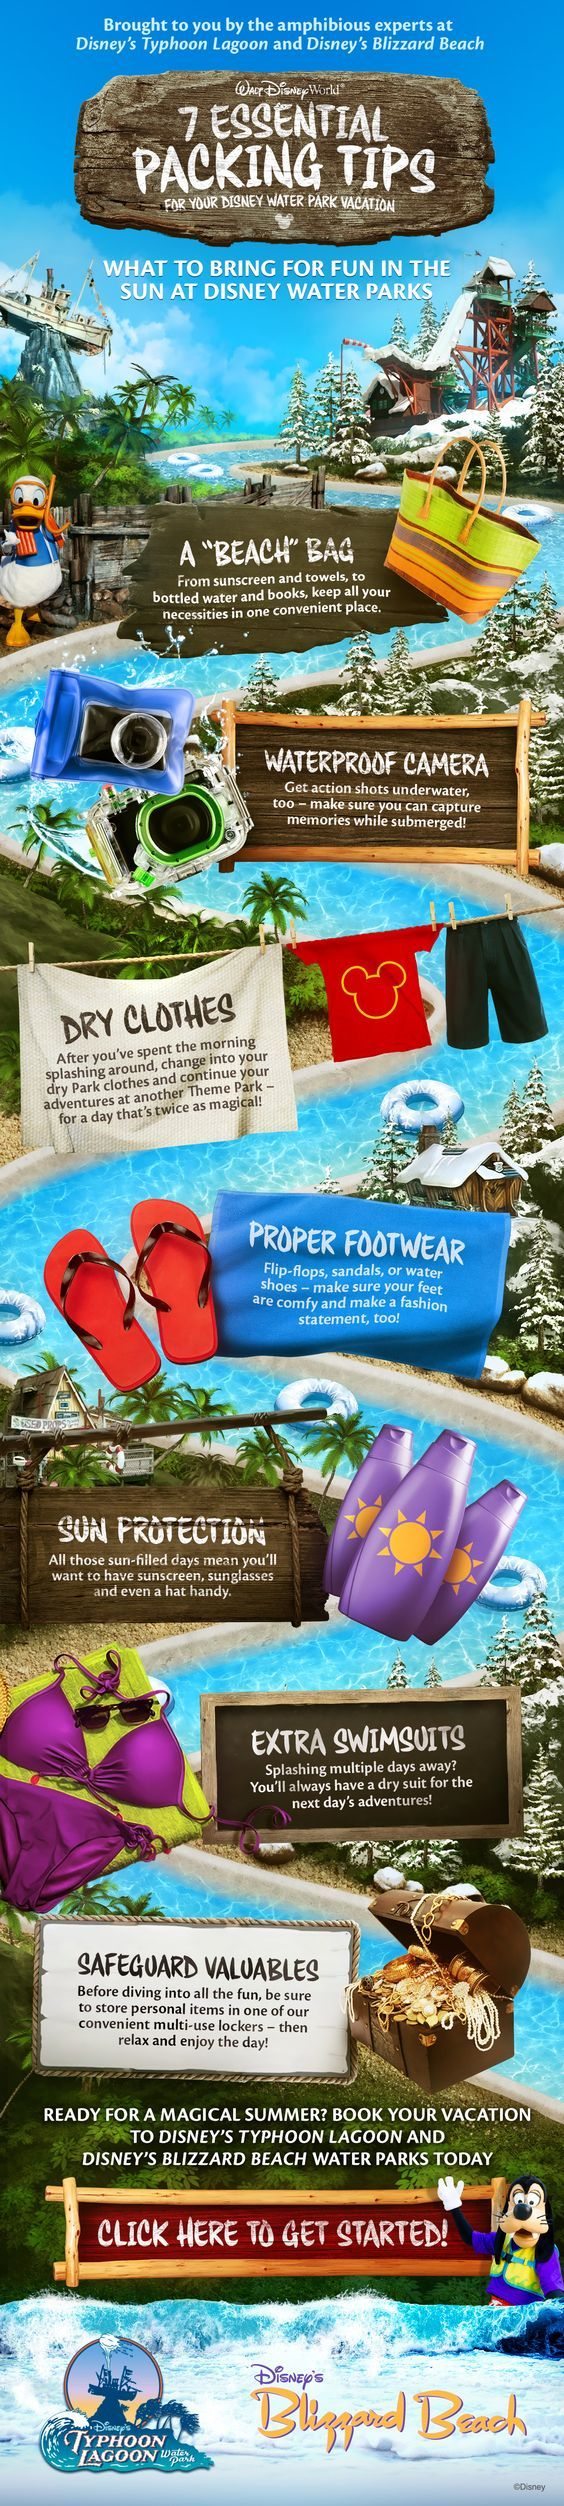 7 Essential Packing Tips for your Disney Water Park Vacation! And another essential tip is to let Our Laughing Place Travel help plan your most magical Disney vacation ever! Because at OLPTravel, we put the Pixie Dust in Concierge Service! #DisneyFun at www.ourlaughingplace.com